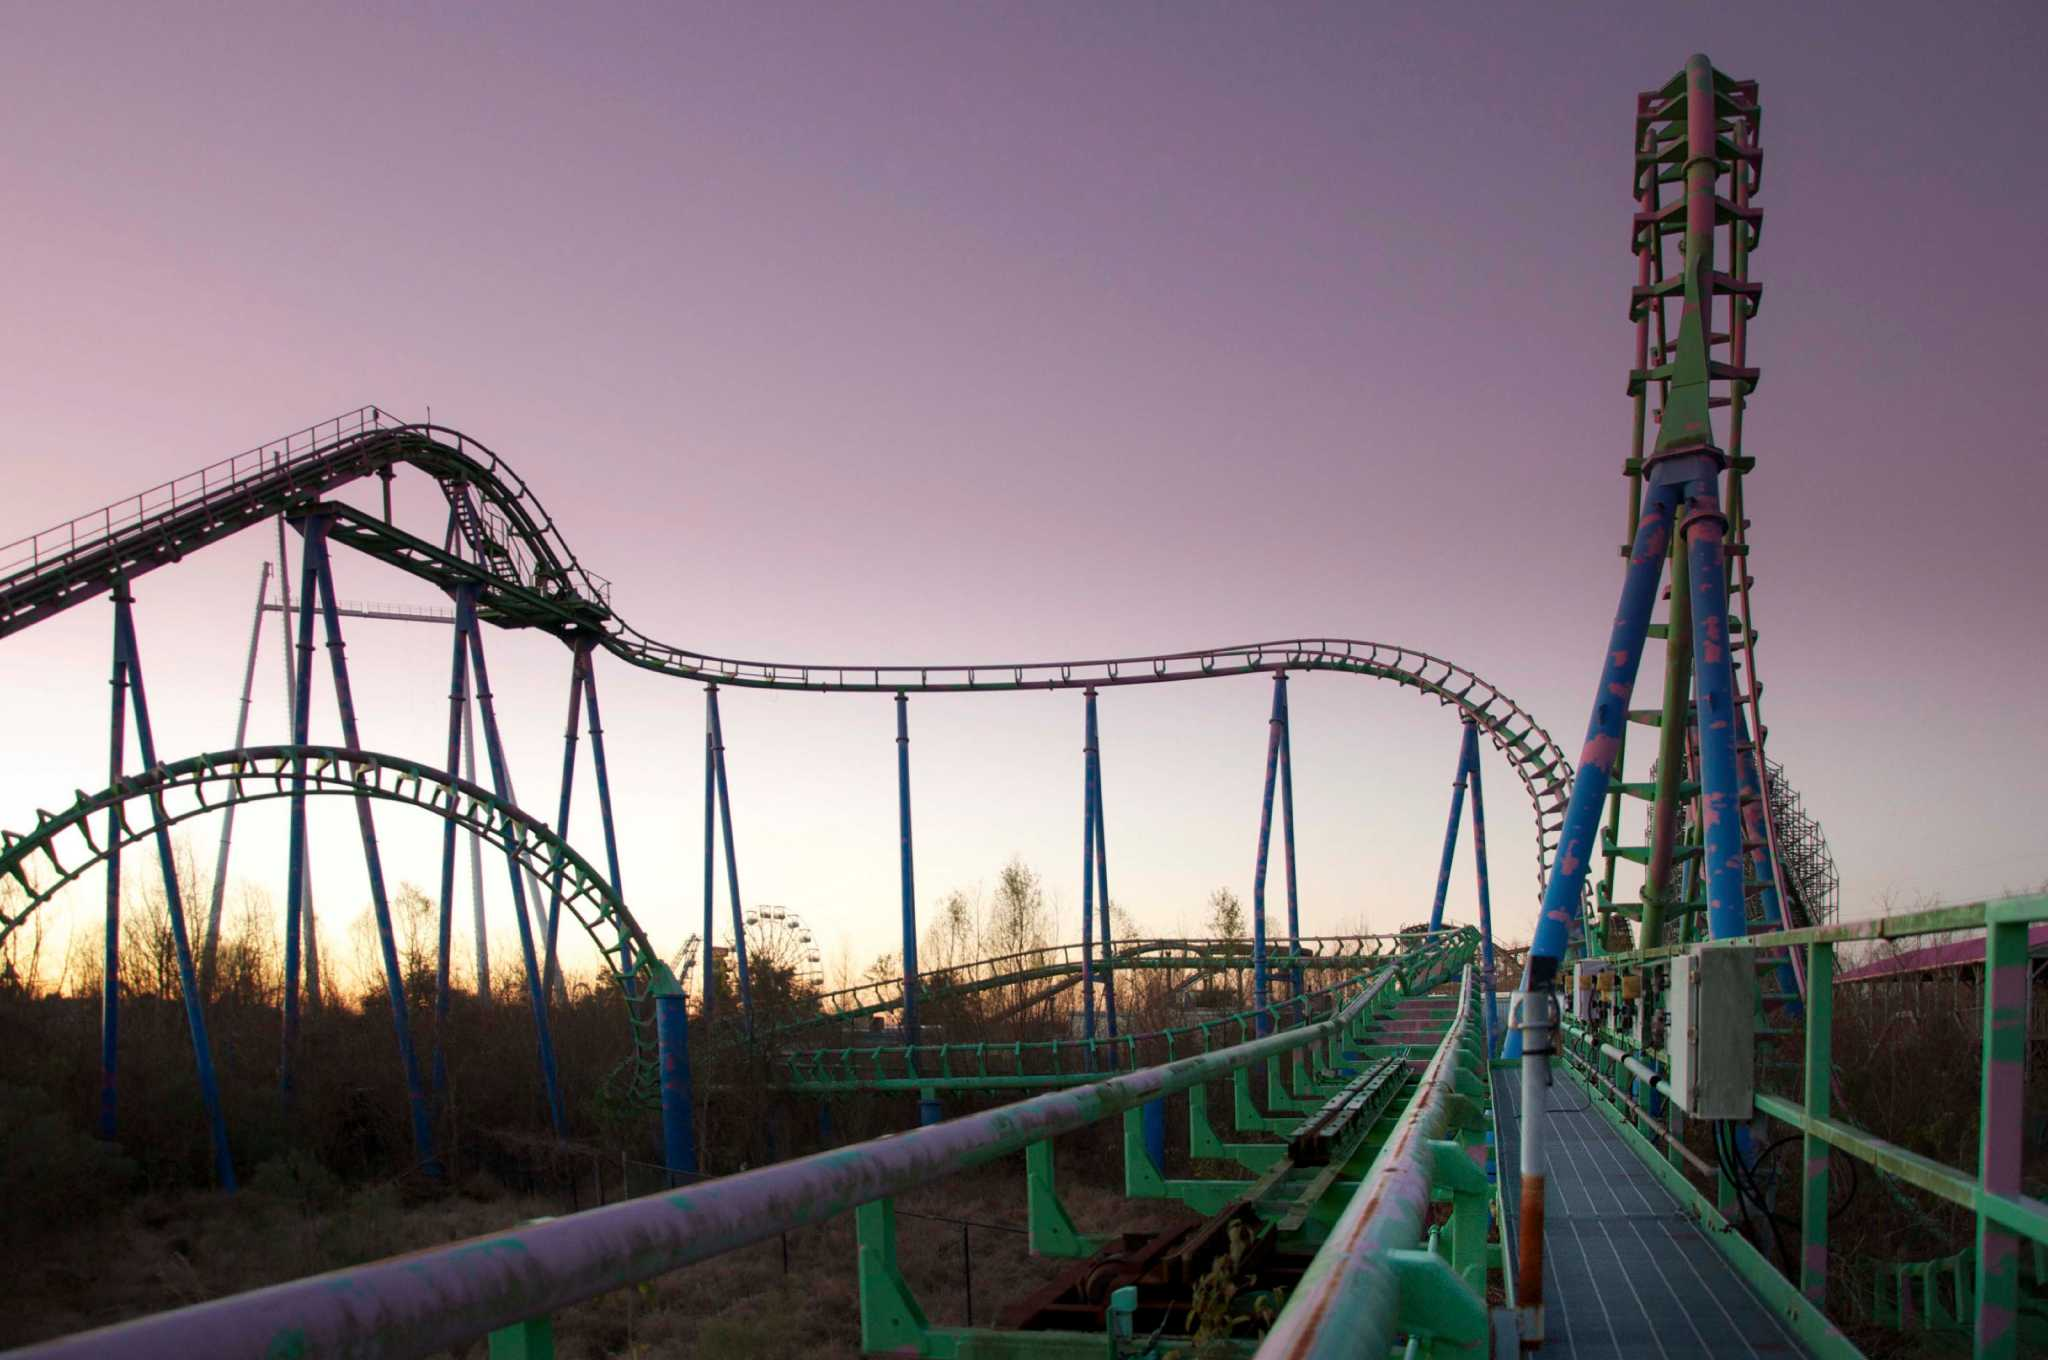 Photos Show Desolate Abandoned Six Flags New Orleans 10 Years After Hurricane Katrina